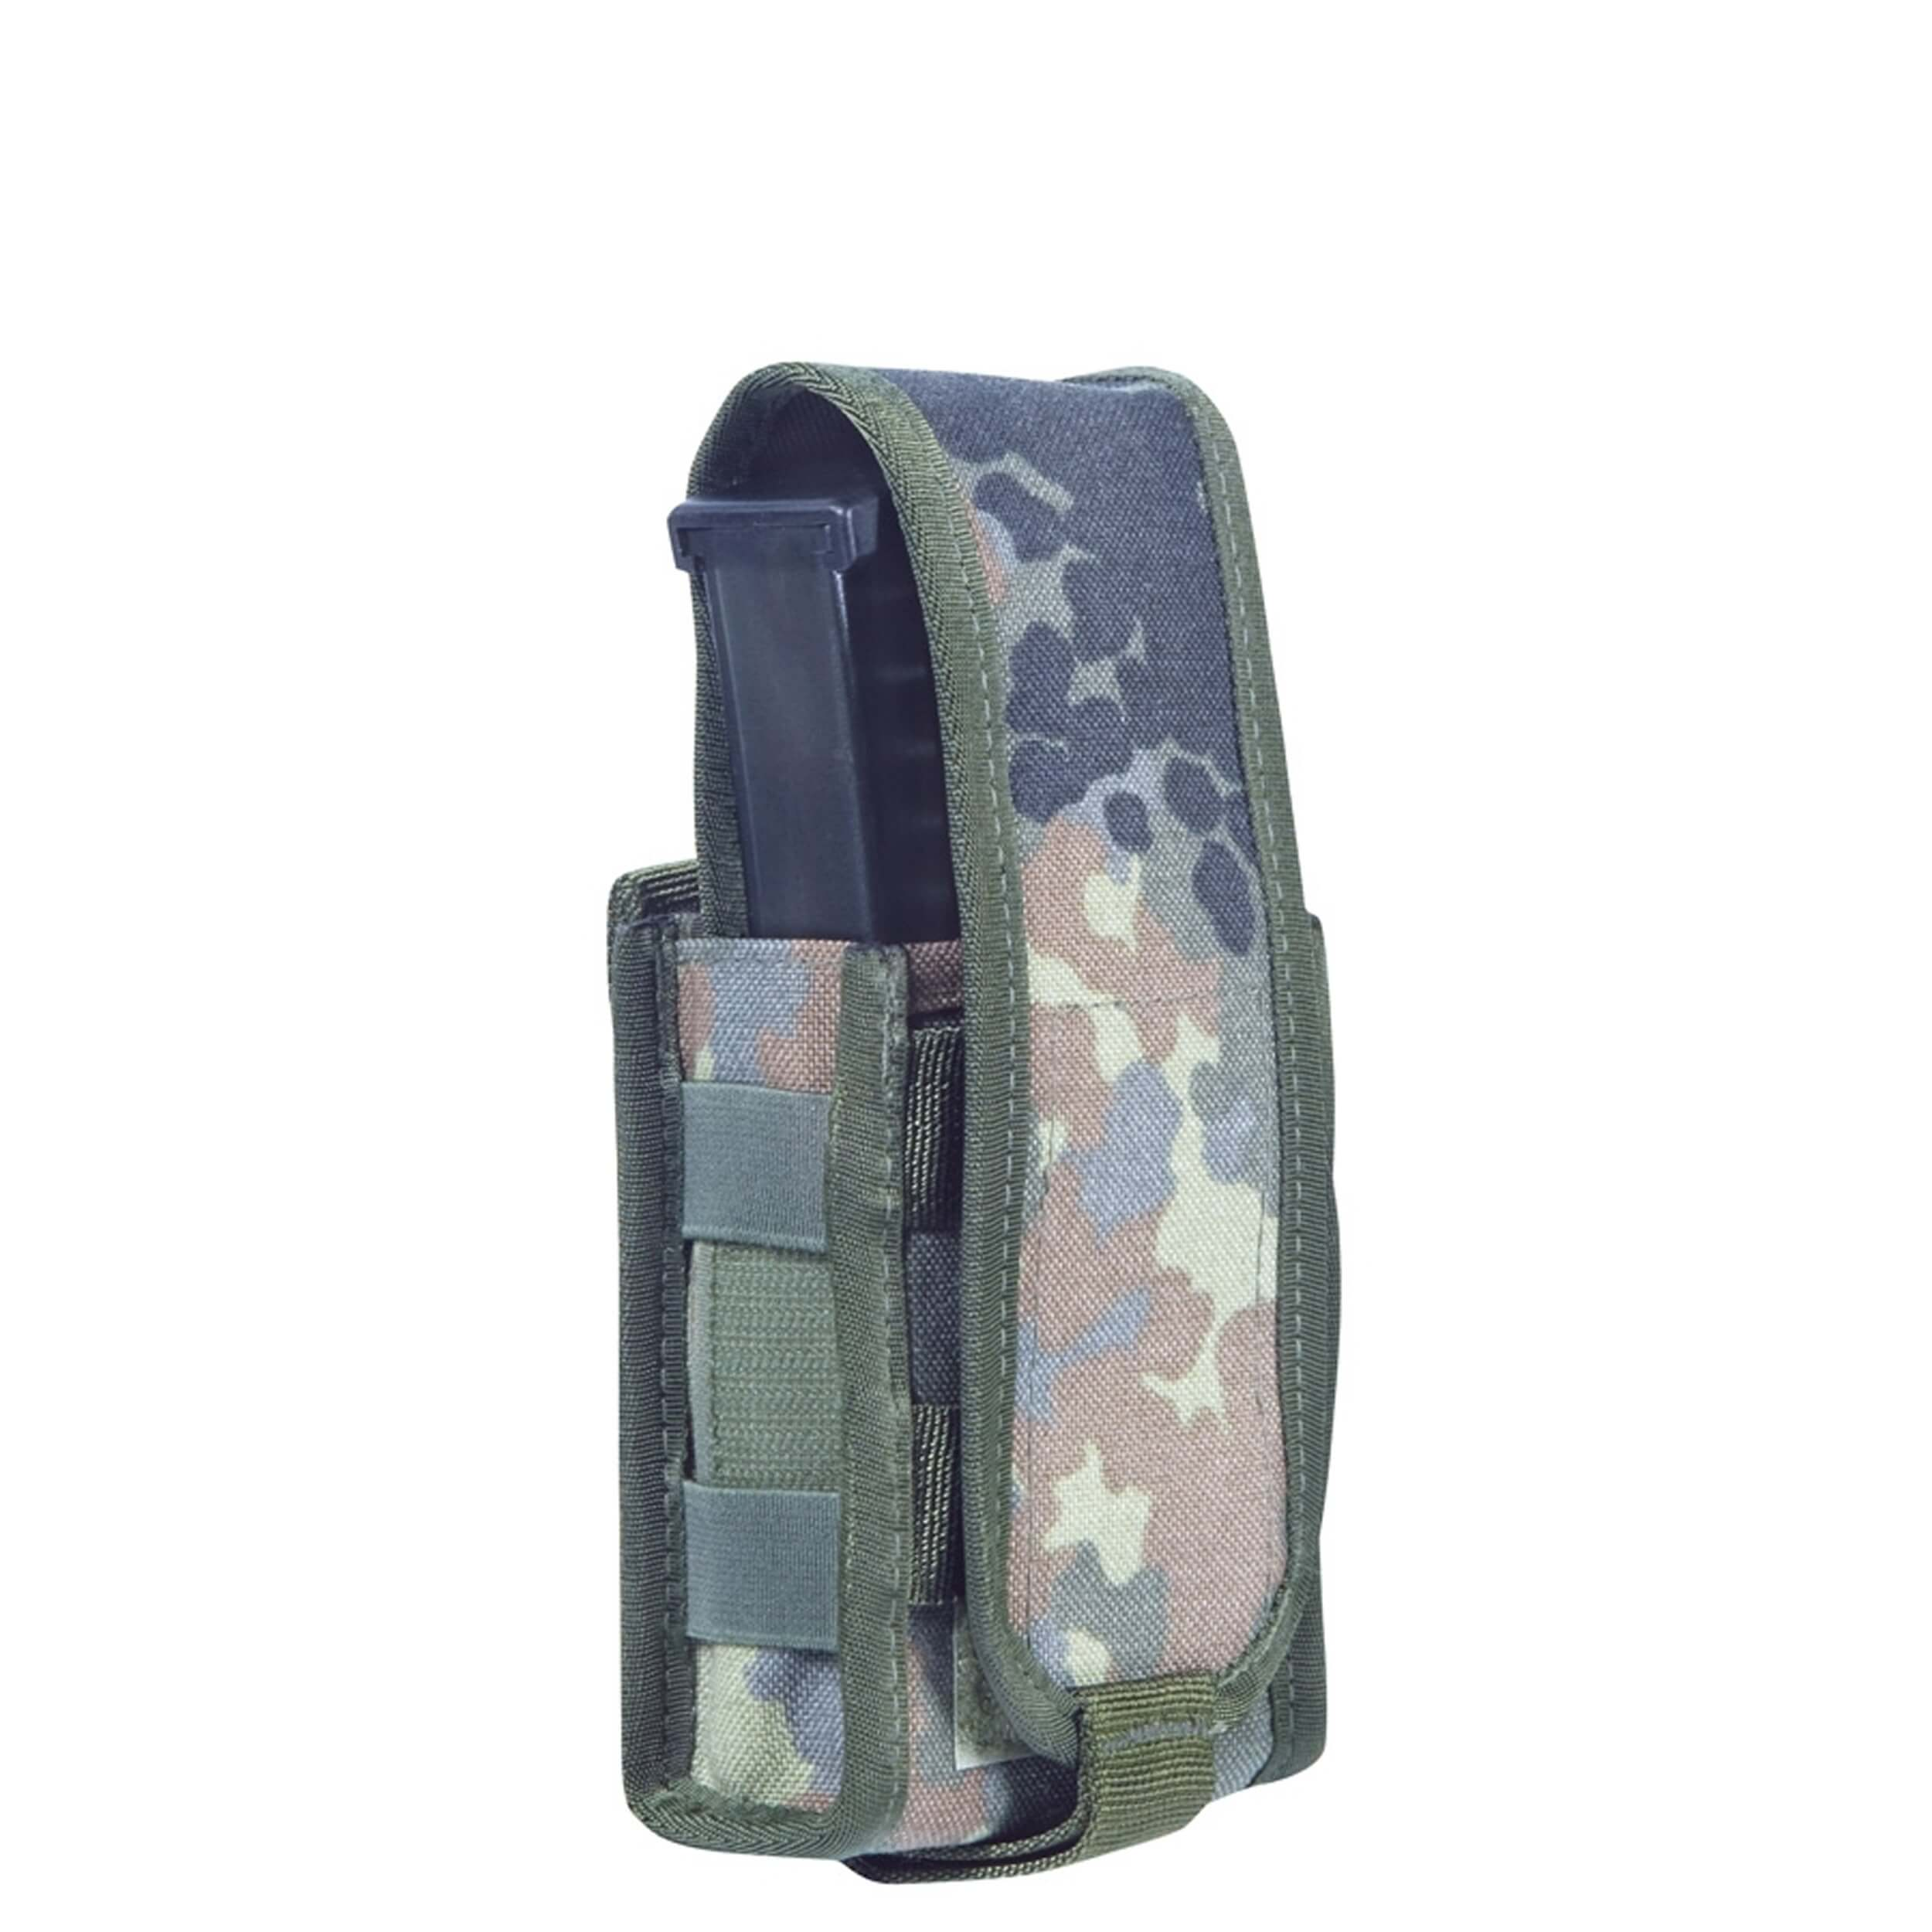 75Tactical Single Magtasche G36 flecktarn